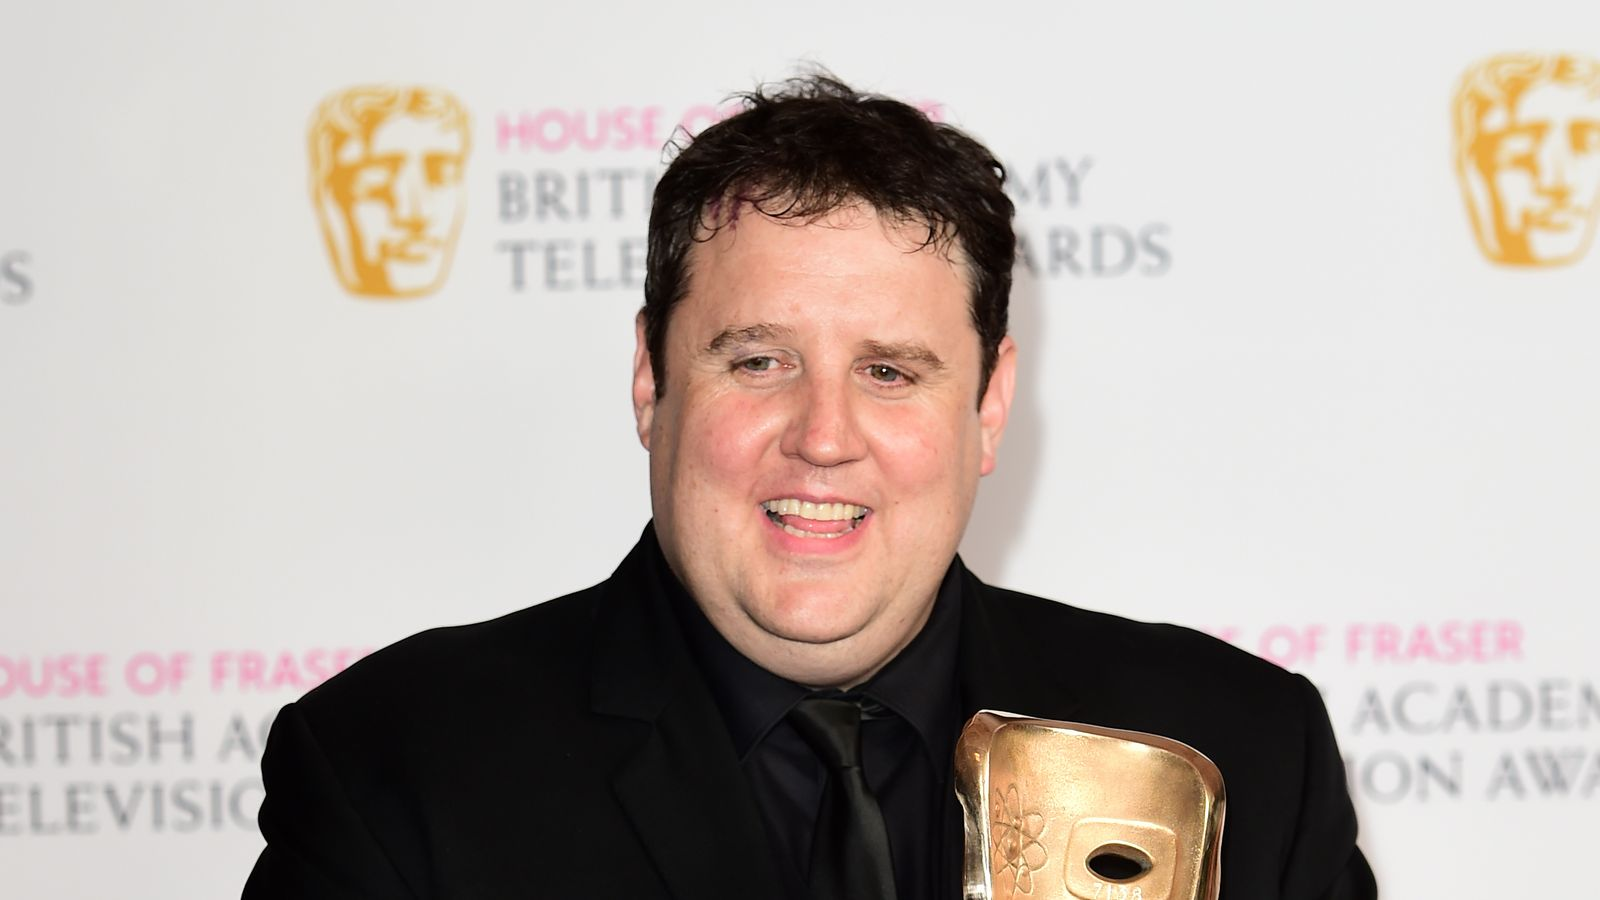 Peter Kay announces long-awaited stage return will be at charity Q&A event in Manchester